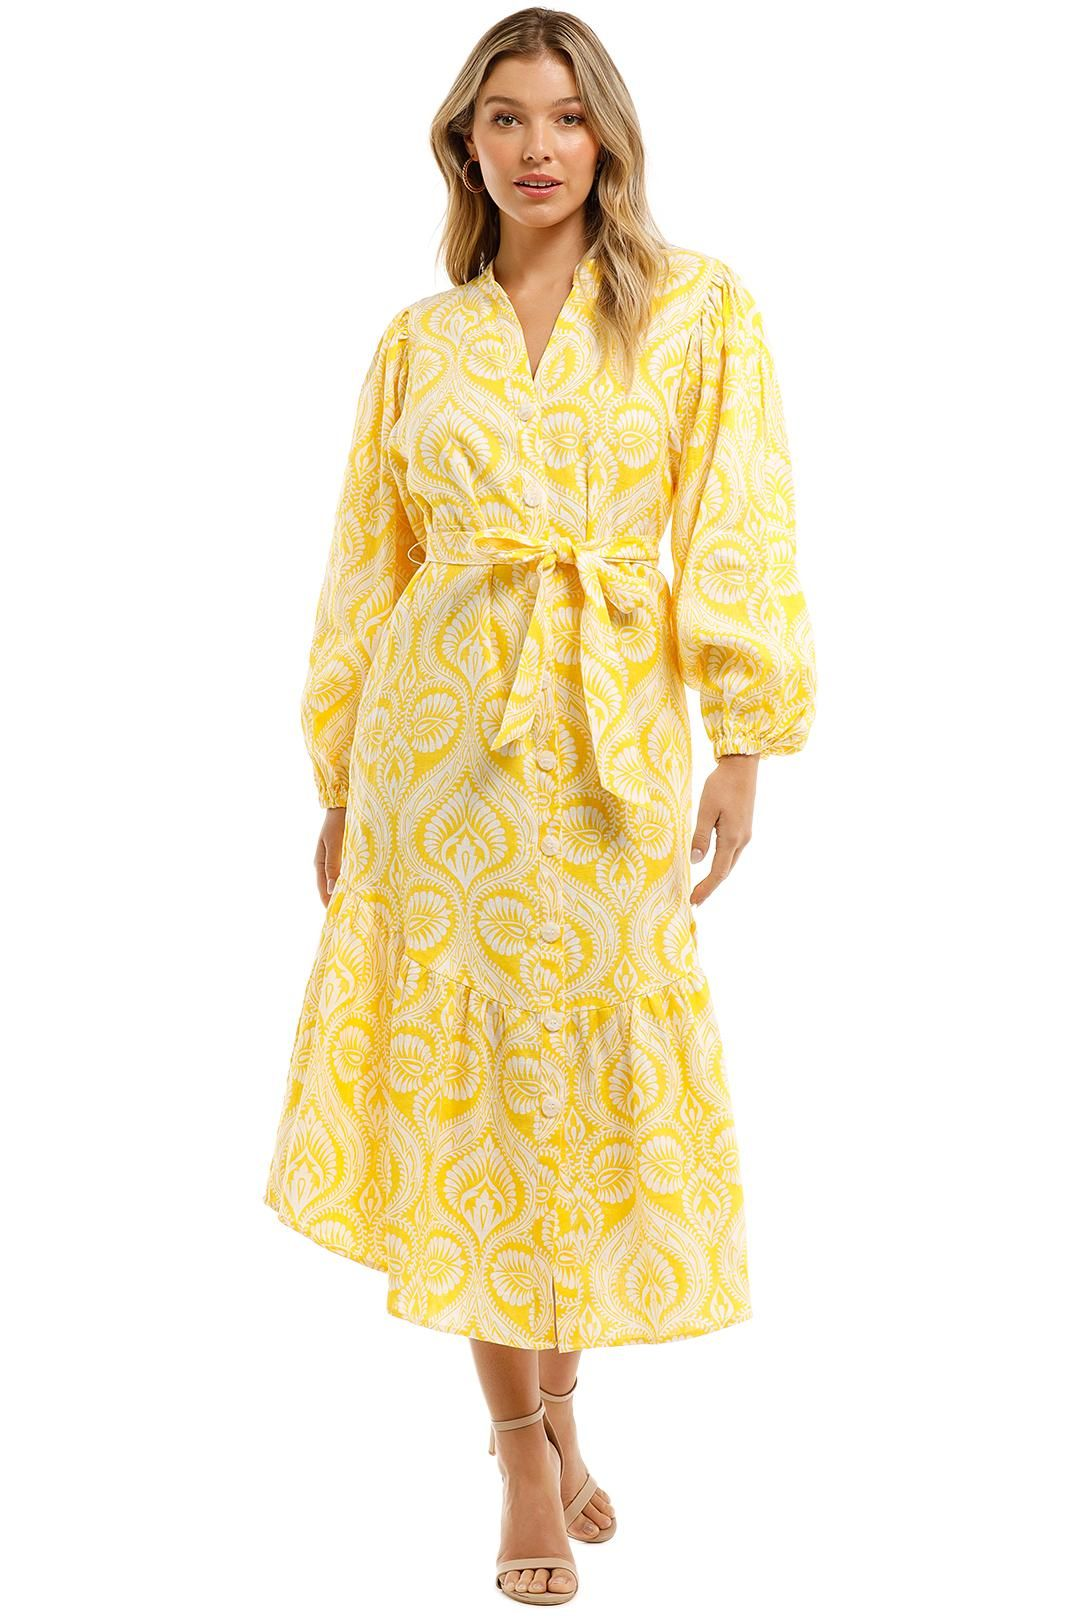 Country Road Print Yellow Wrap V Neck Long Sleeve Dress